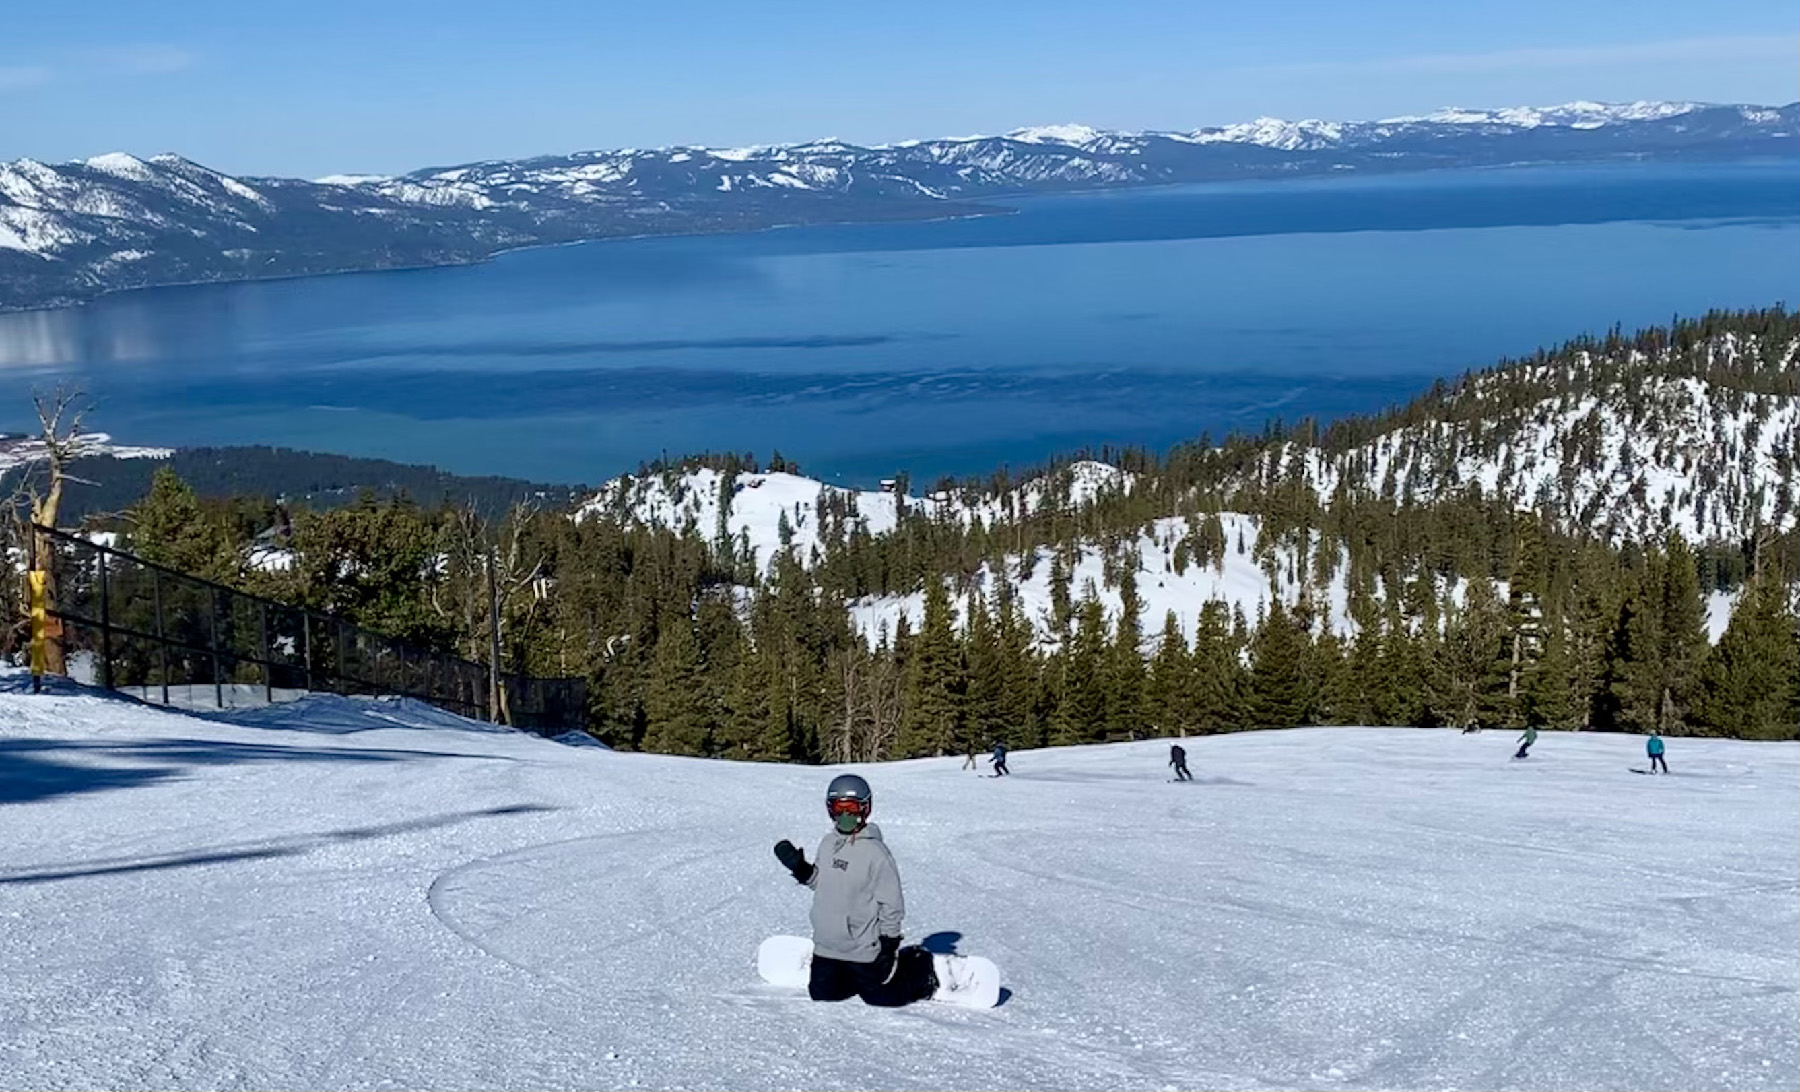 The author's son enjoys snowboarding at Heavenly Ski Resort in Lake Tahoe, Calif. (Courtesy of Margot Black)